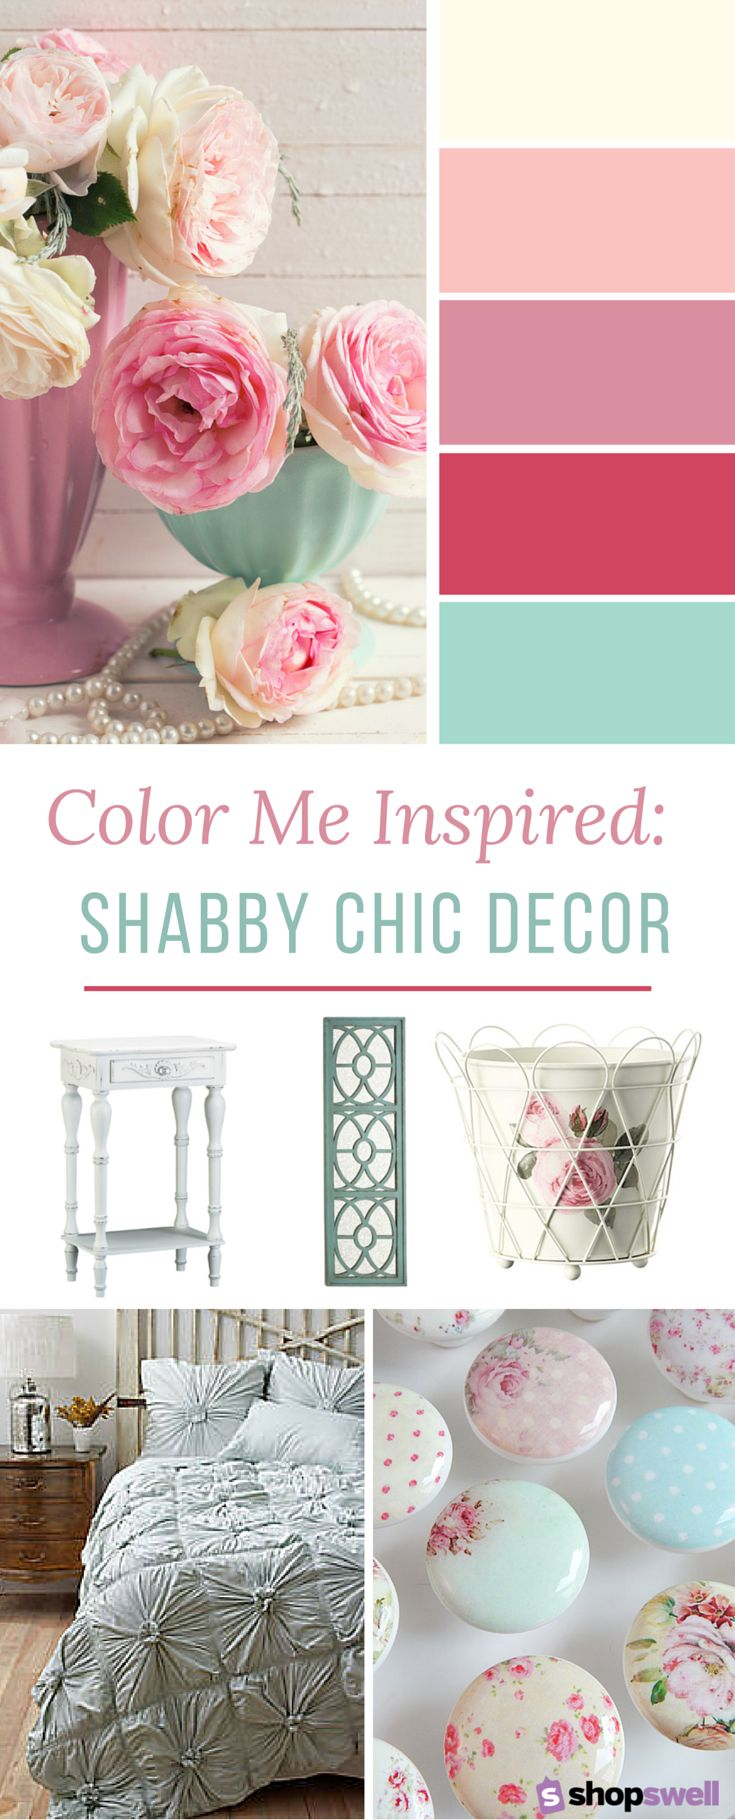 Shabby chic bedroom paint colors - 20 Home Decor Essentials For The Shabby Chic Bedroom